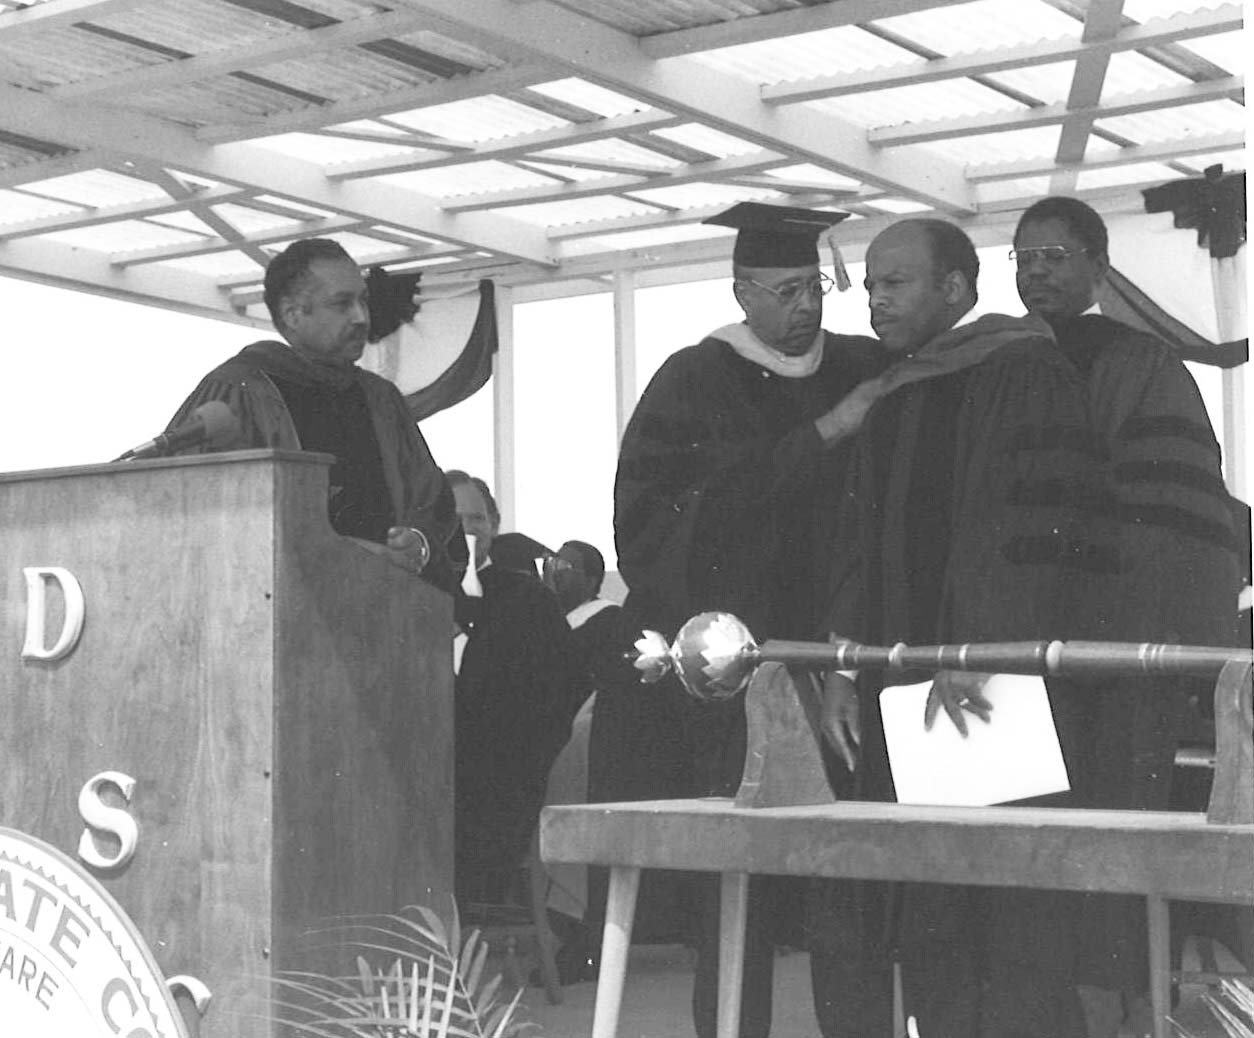 Dr. Ulysses S. Washington and Henry Tisdale place the honorary doctoral sash on John Lewis. Dr. William B. Delaware watches.